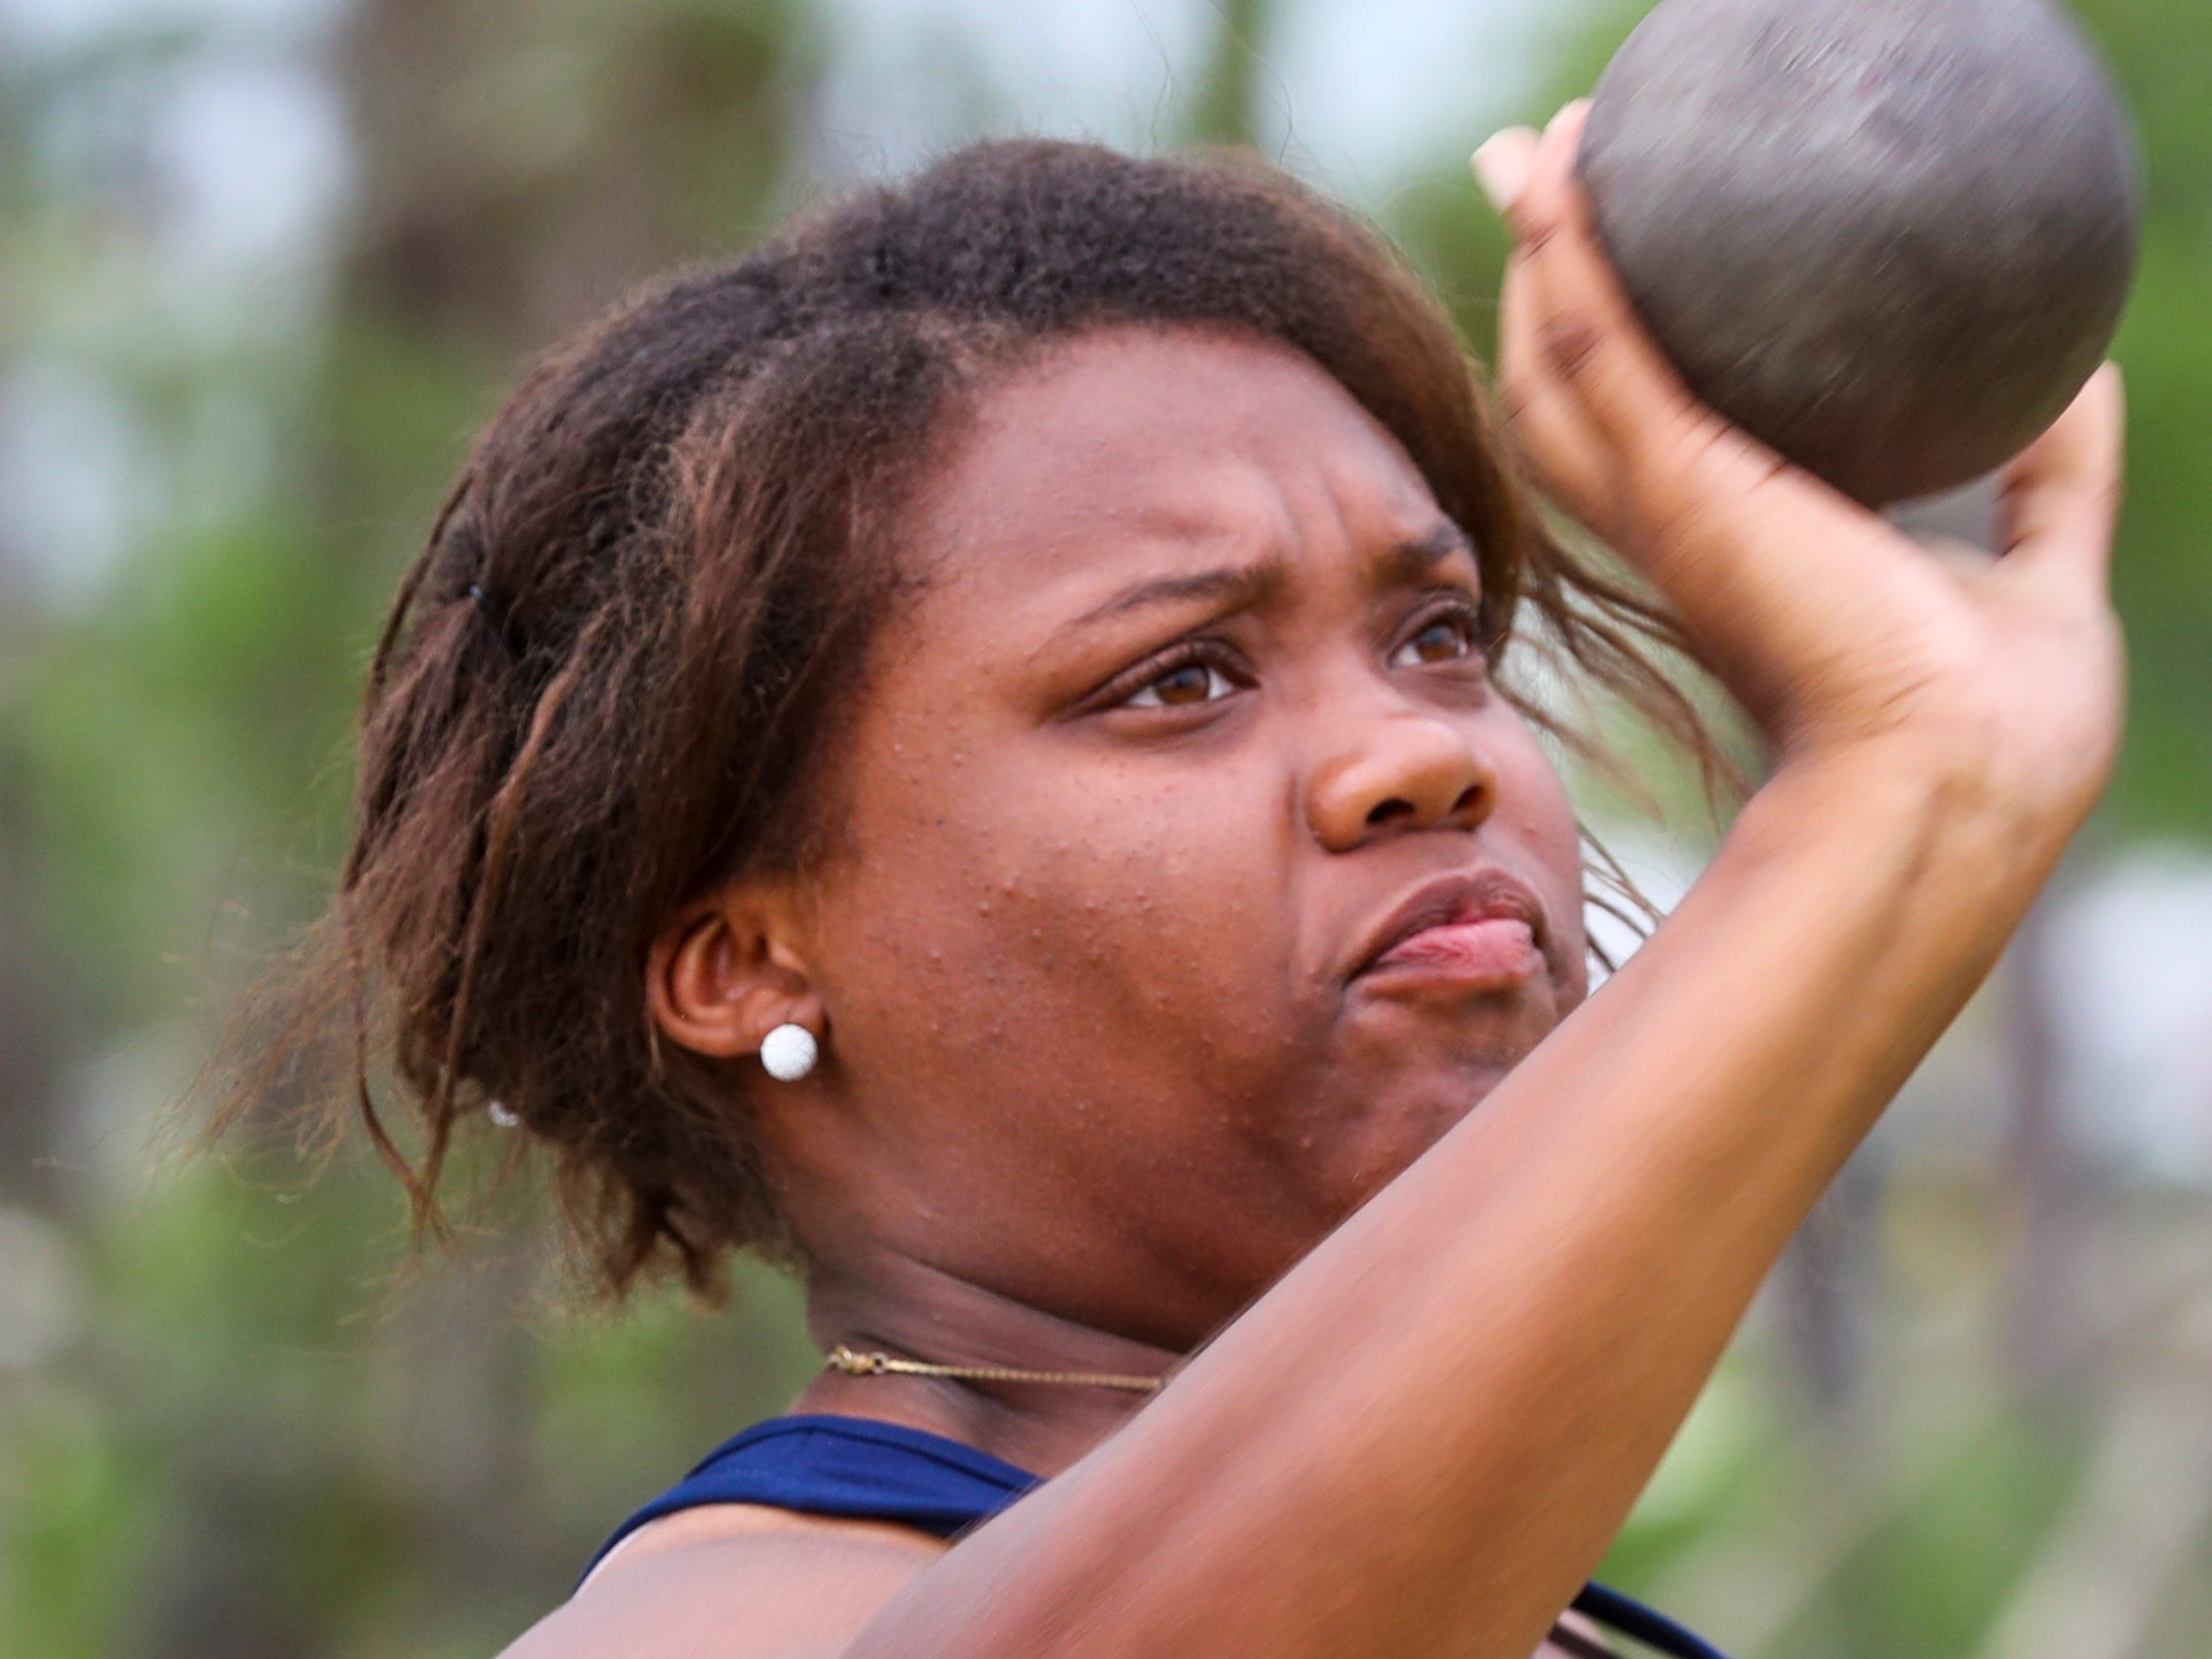 10th place, Dariona Fleming